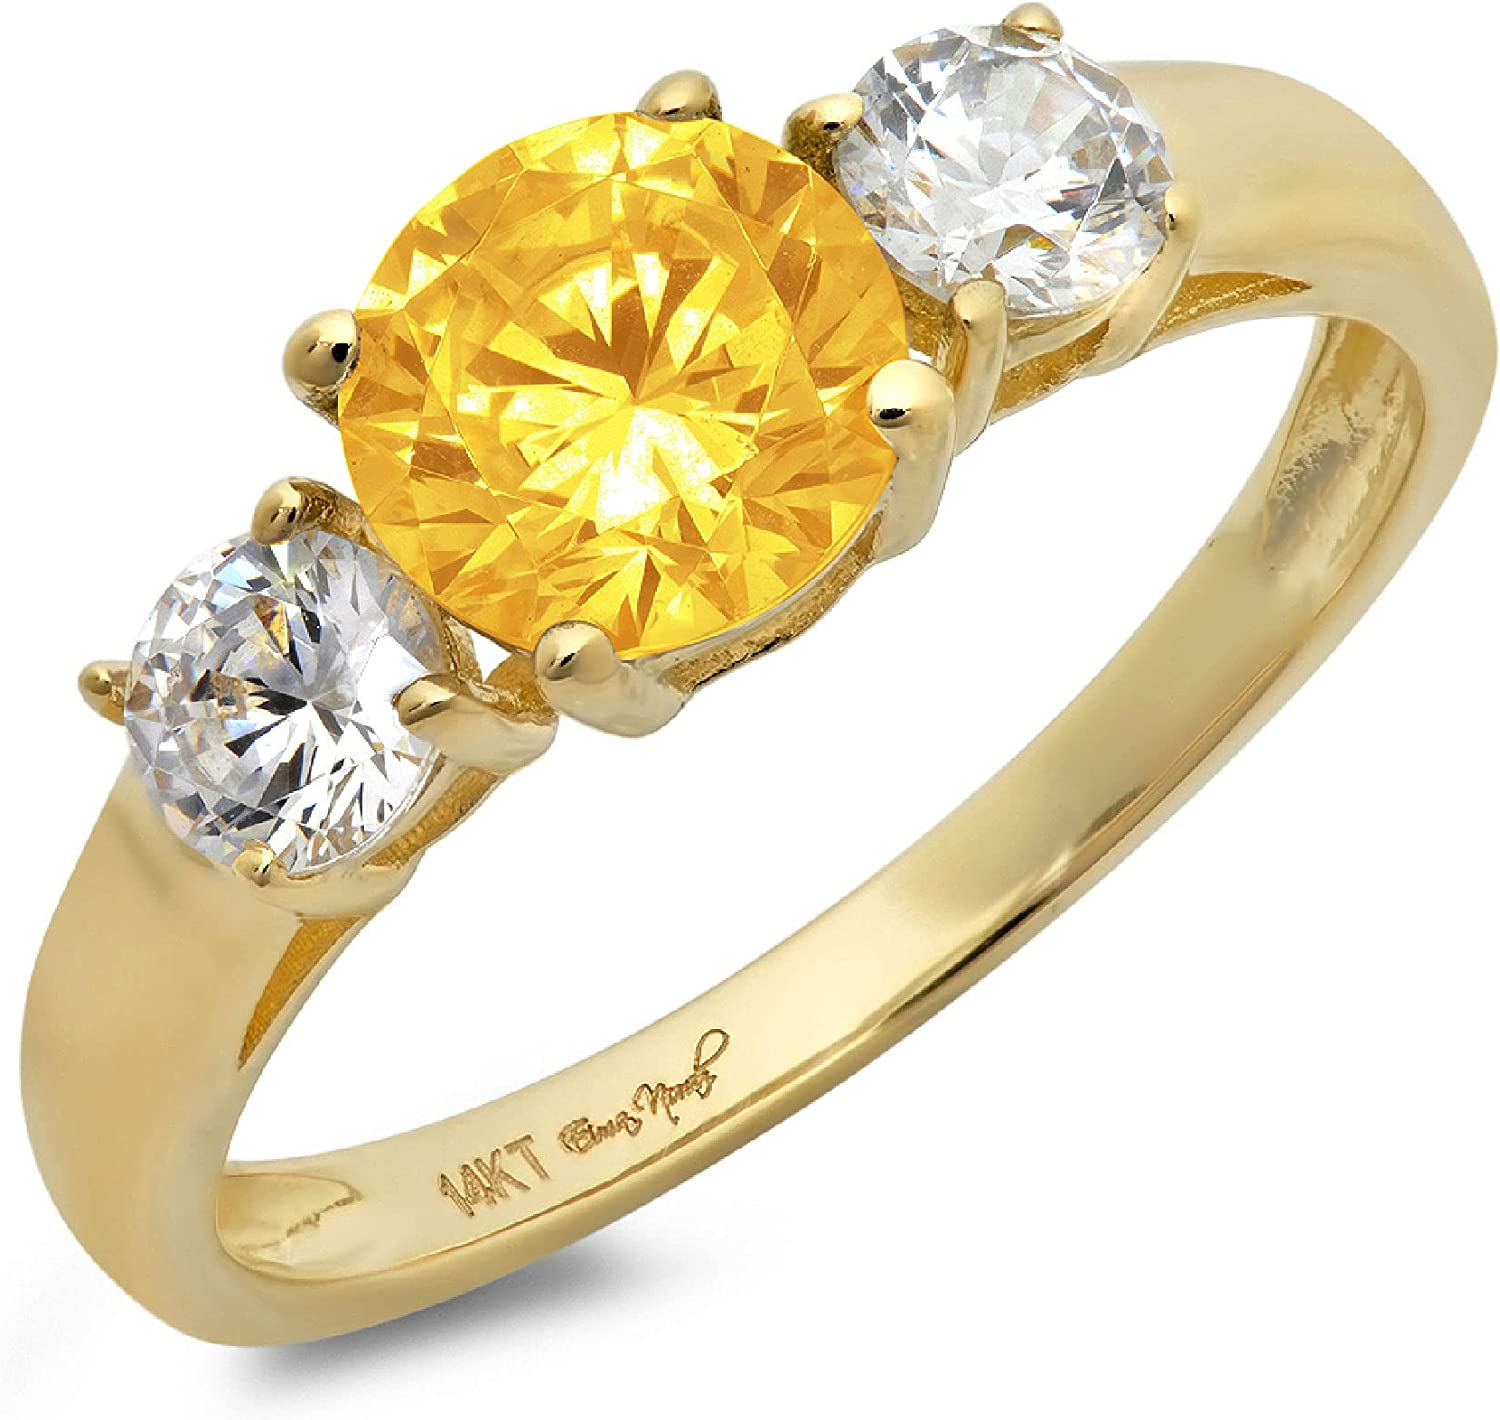 1.50ct Brilliant Round Cut Solitaire 3 stone Genuine Flawless Natural Yellow Citrine Gemstone Engagement Promise Statement Anniversary Bridal Wedding Ring Solid 18K Yellow Gold